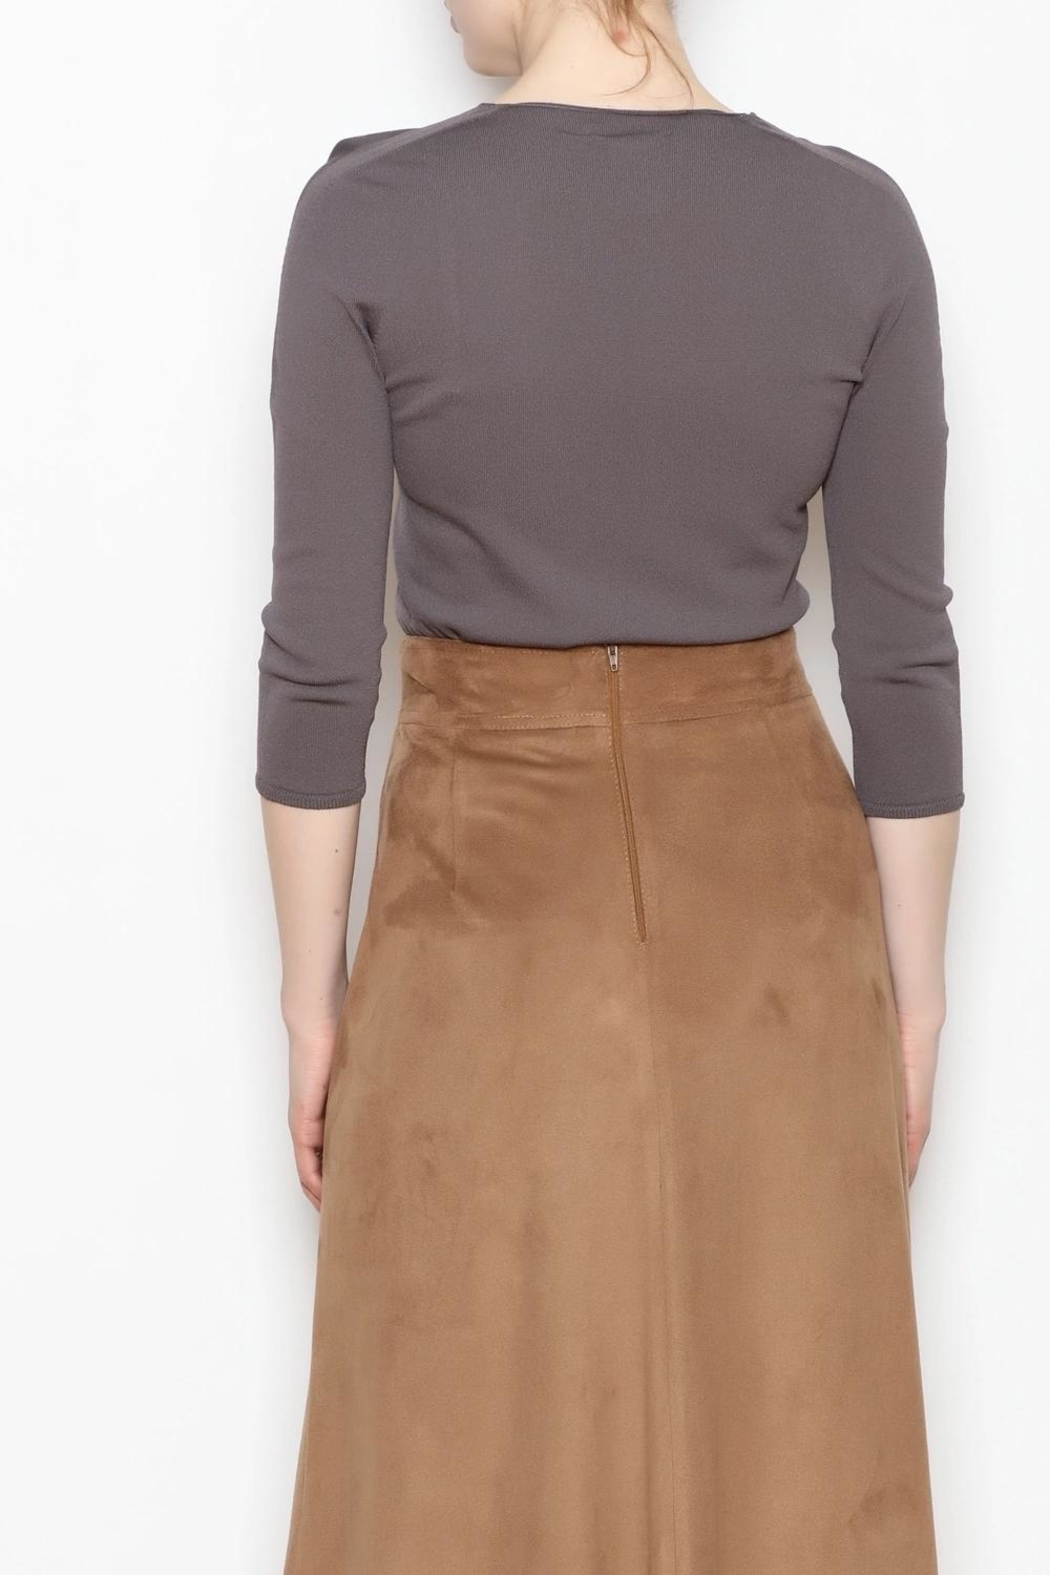 Camelot Metallic Suede Skirt - Side Cropped Image